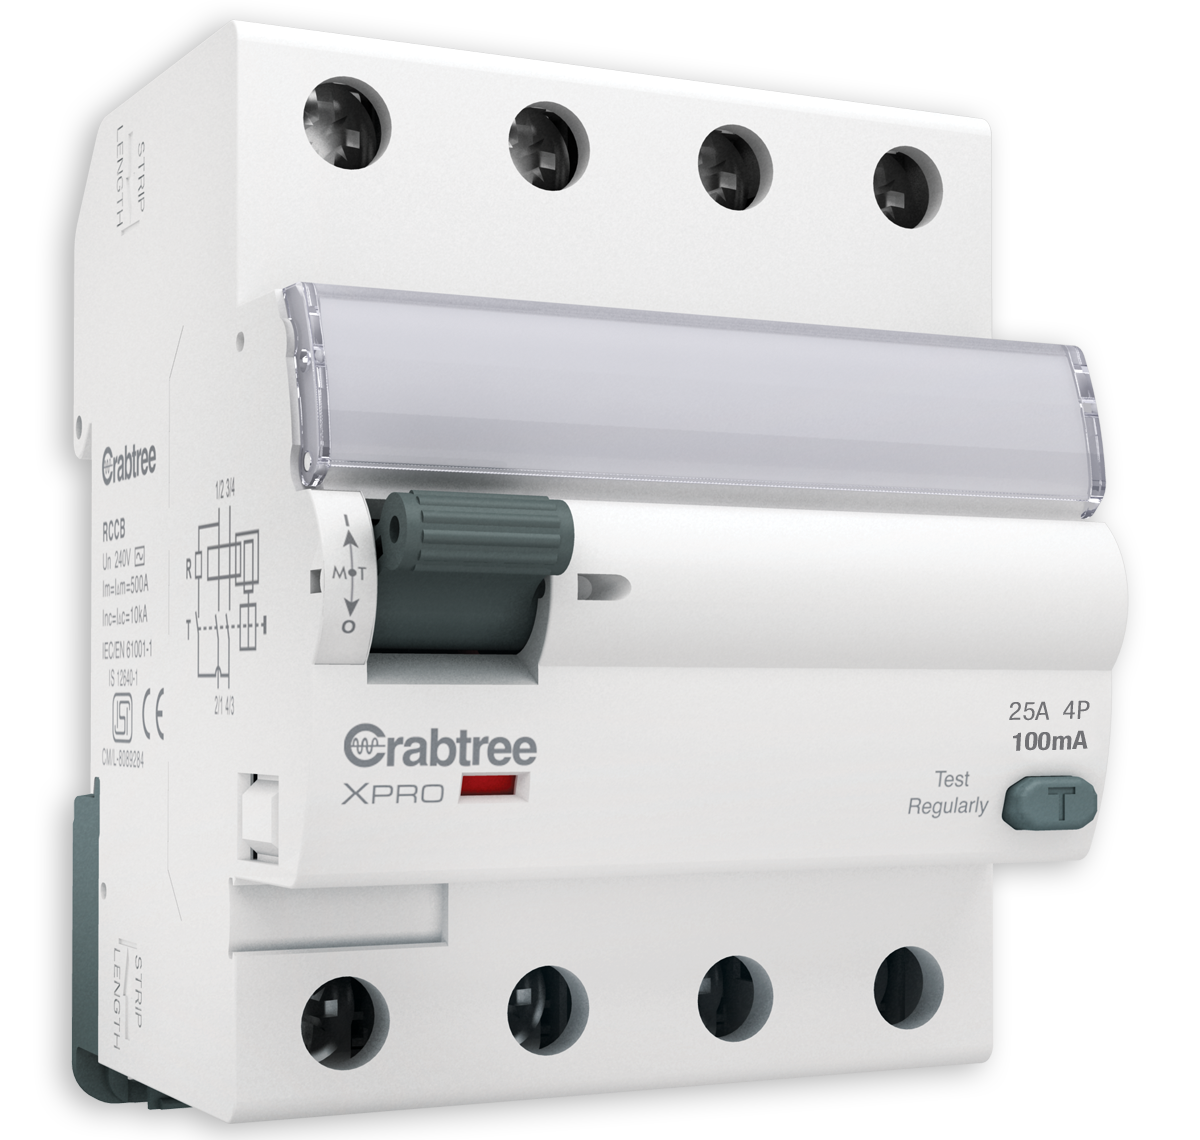 Crabtree - RCCB  A  Type FP 100mA-25A